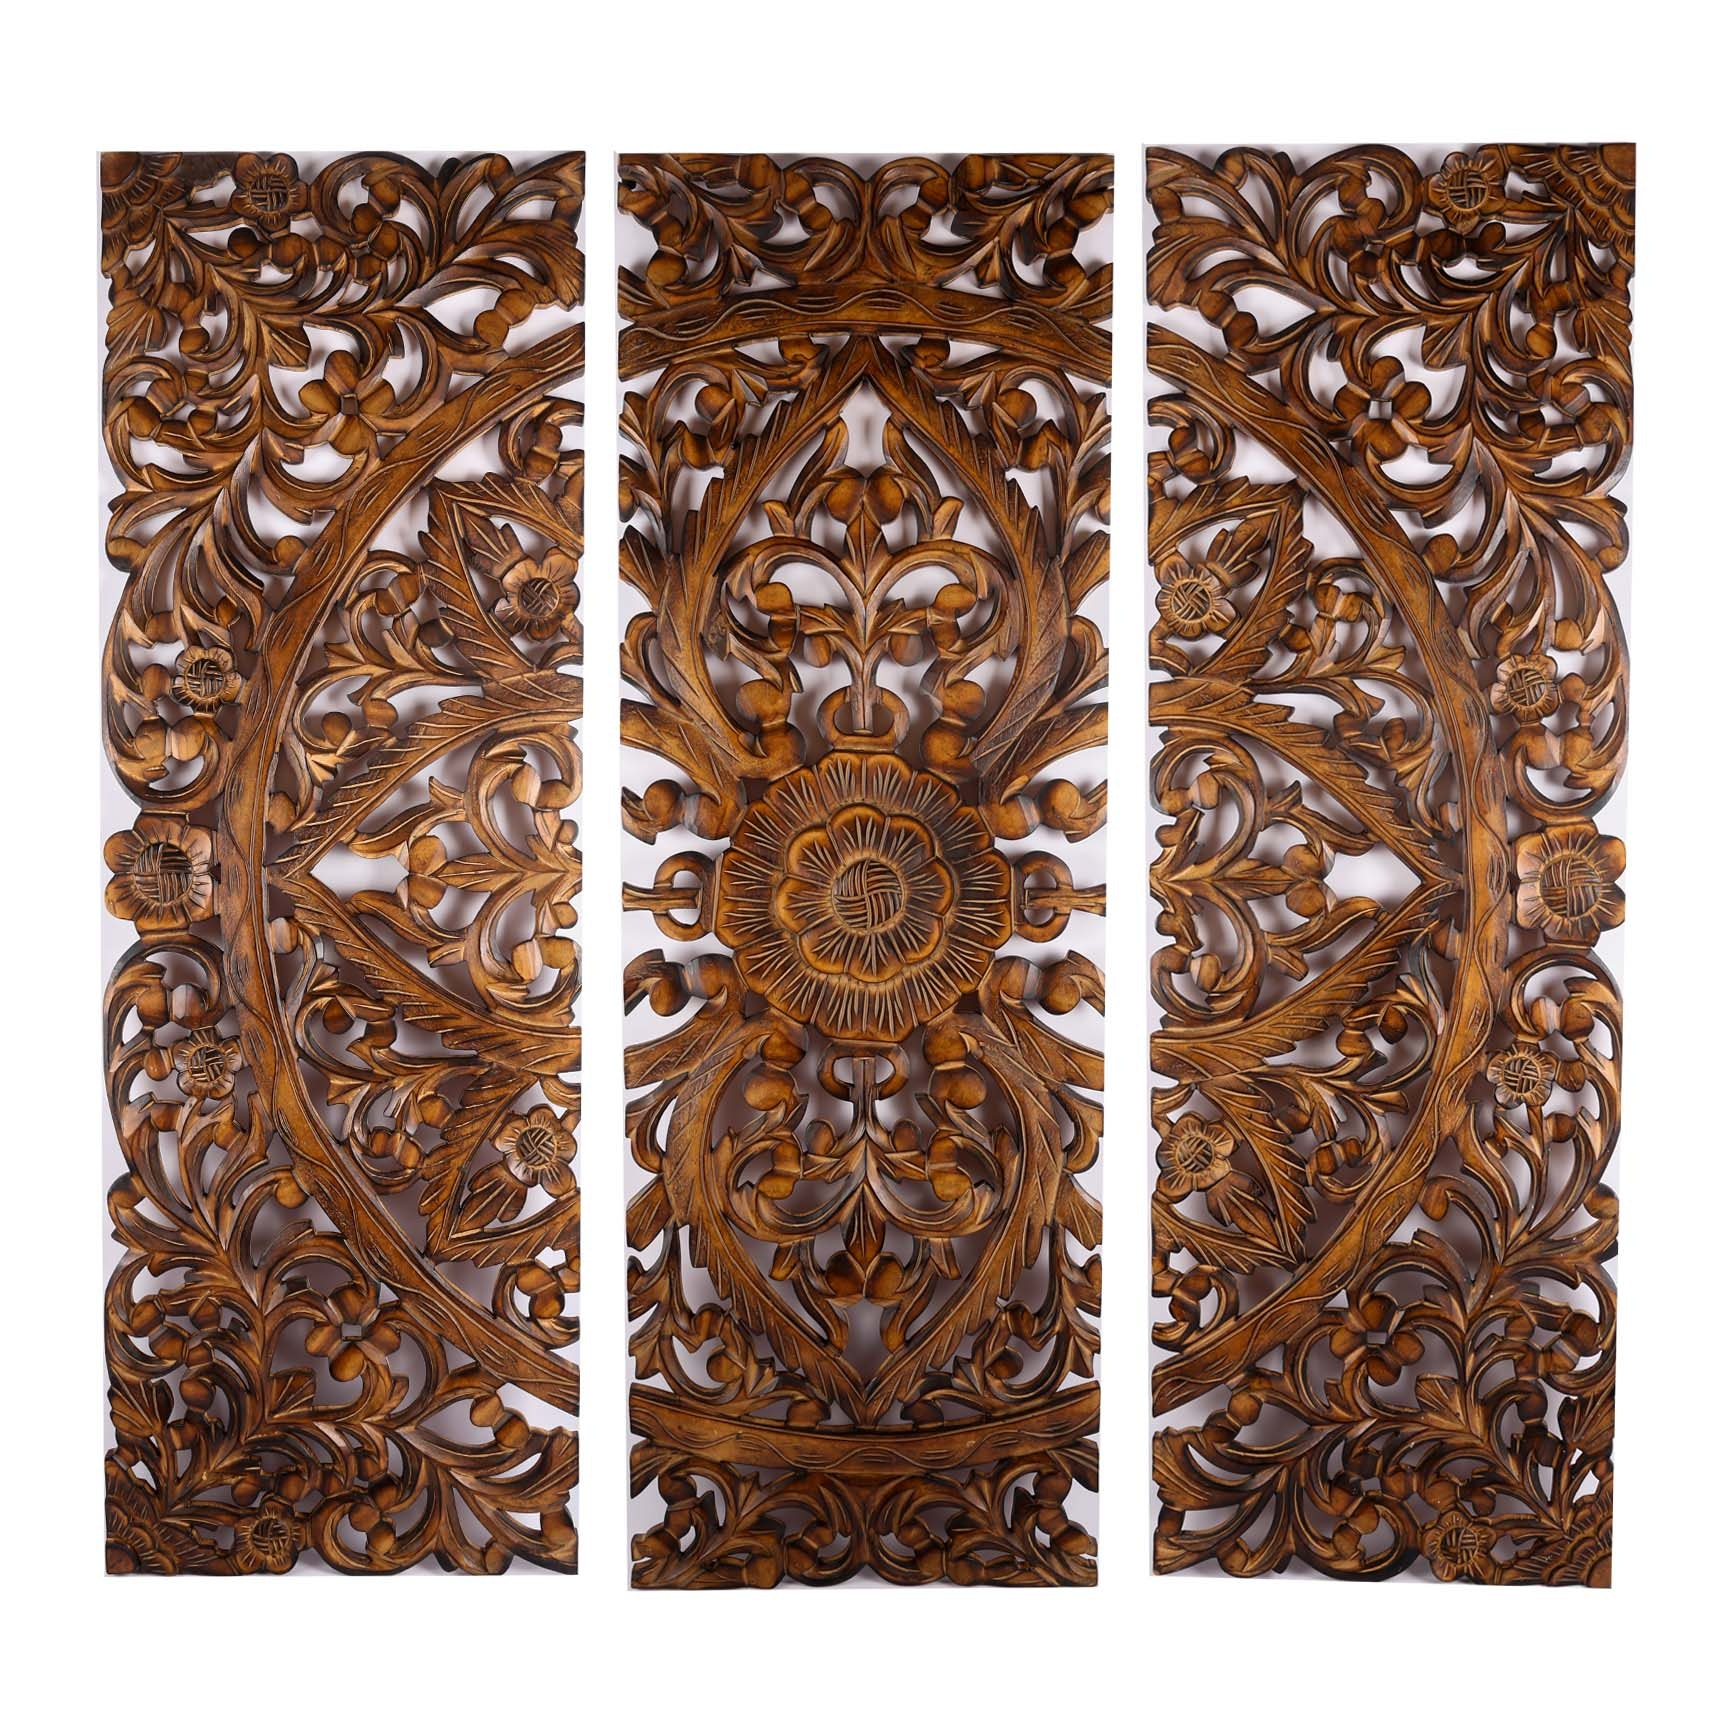 Carved Teak Triptych Panels